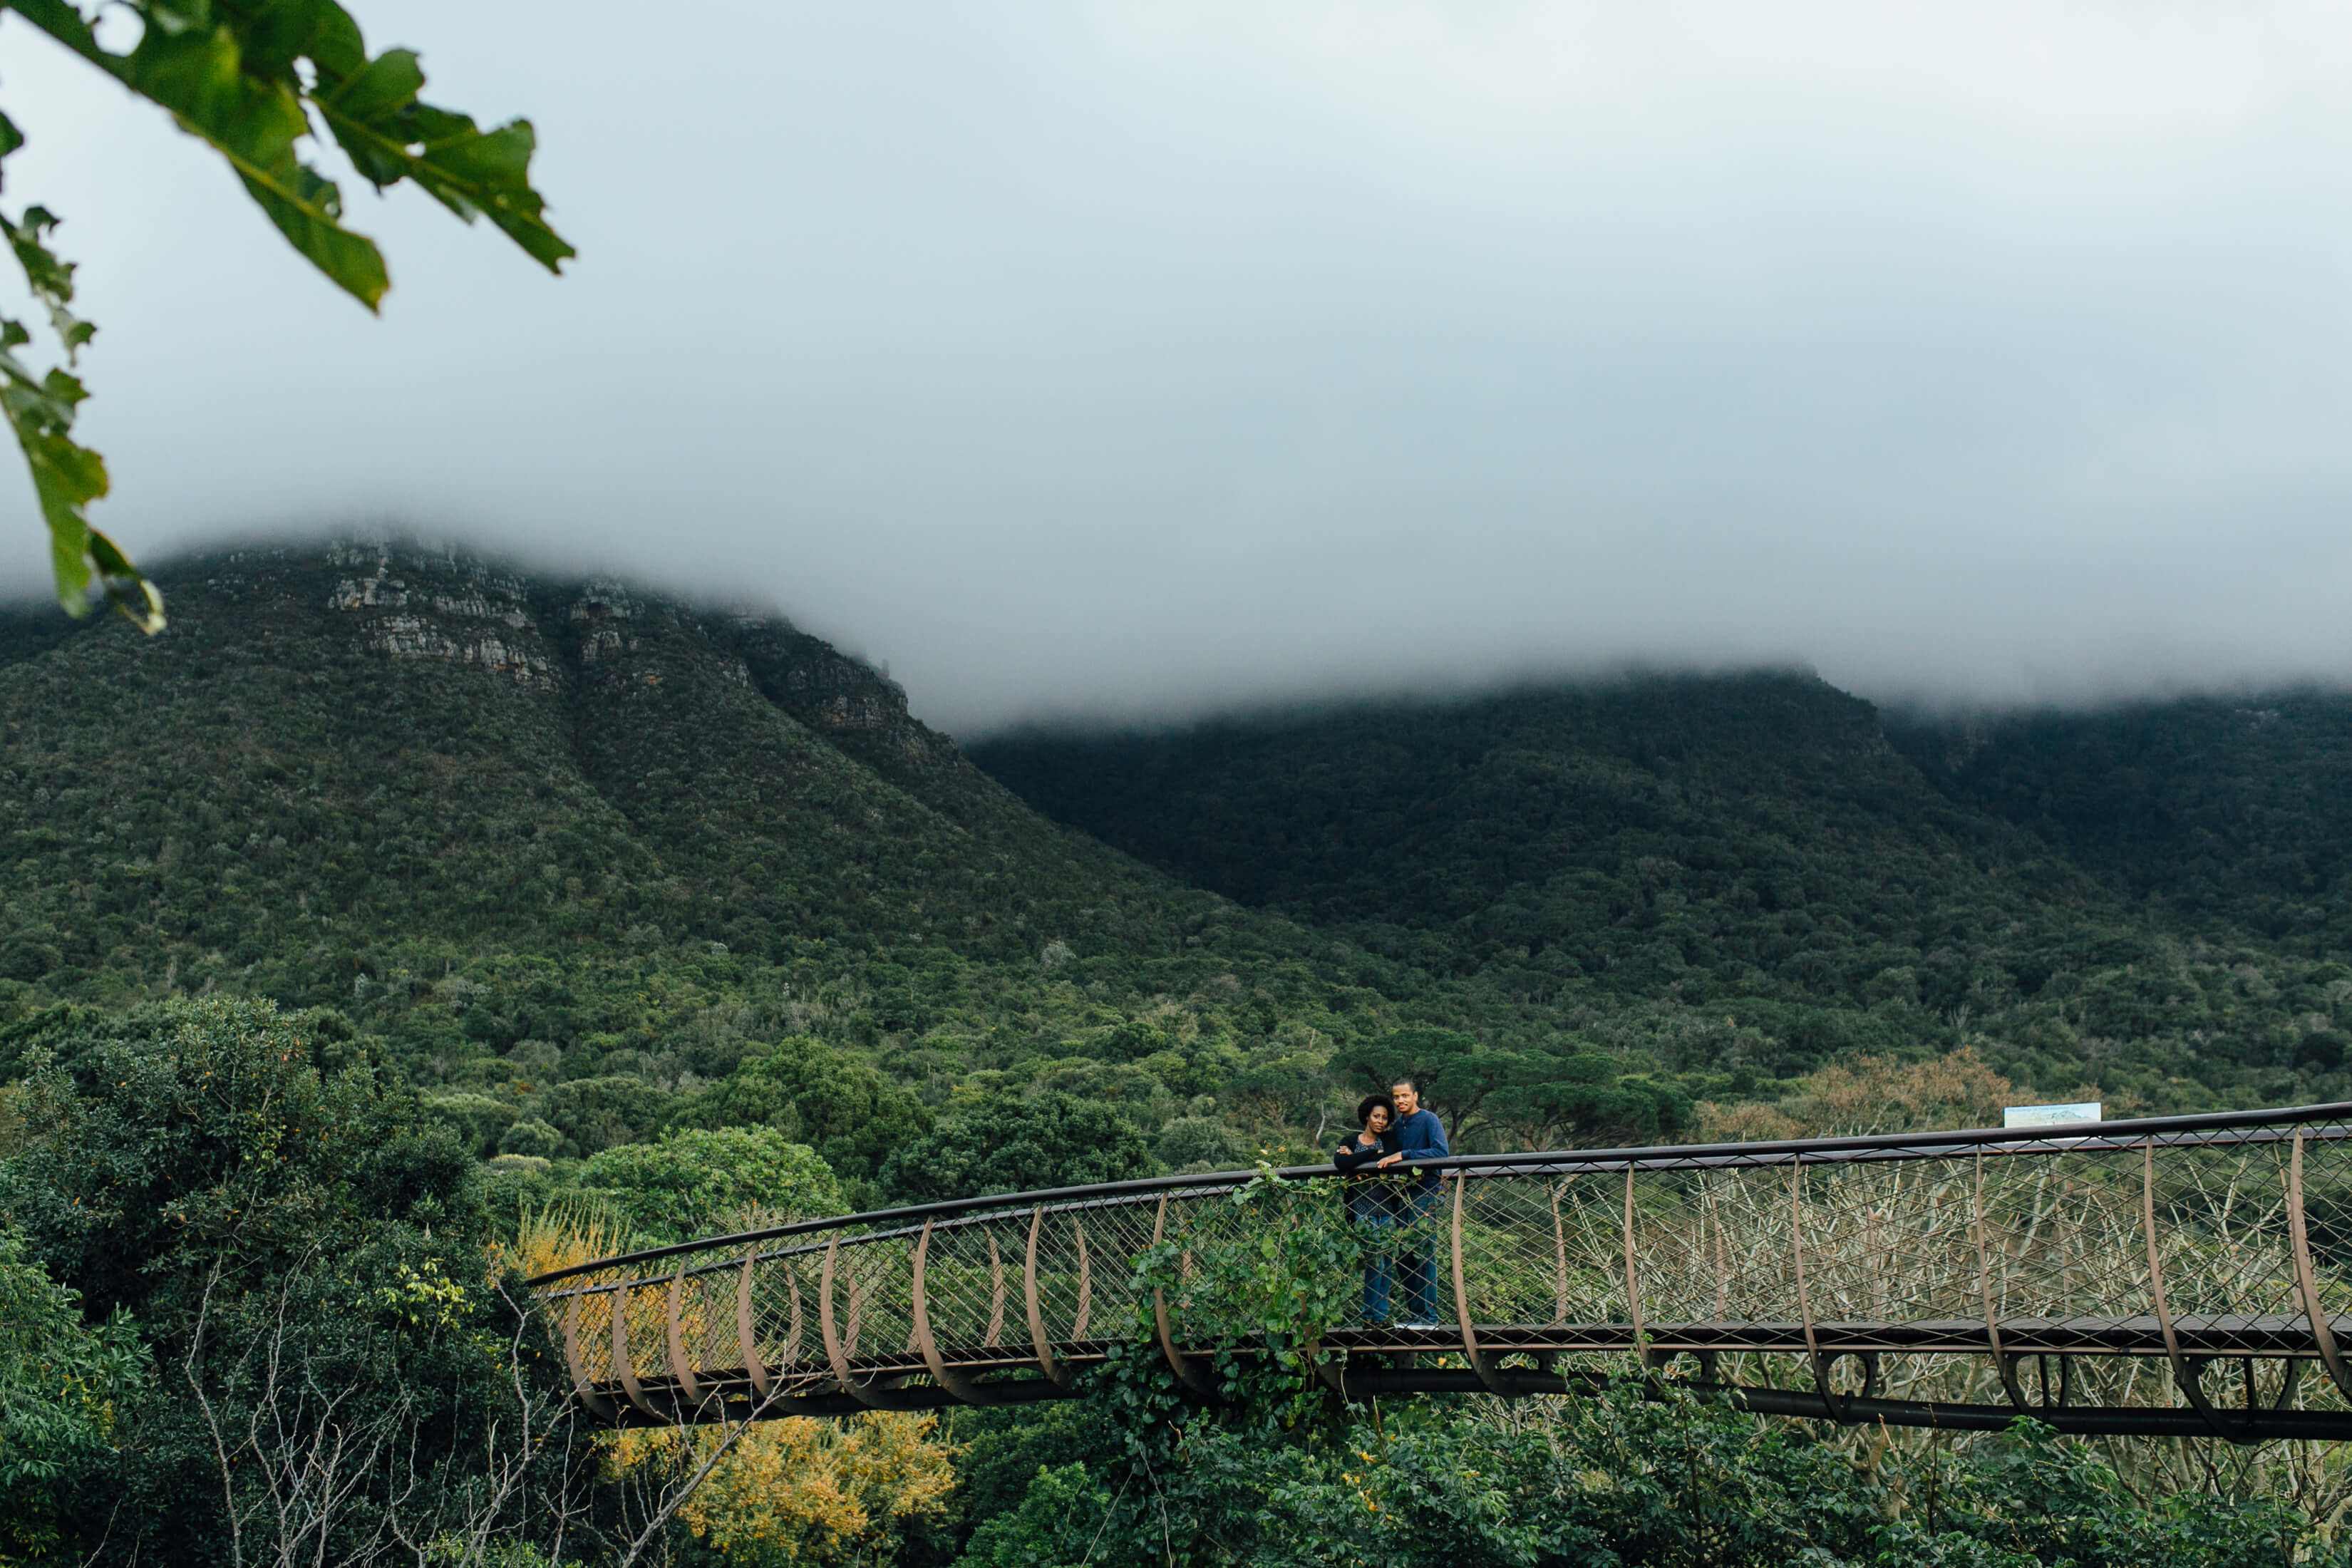 A couple stands on a bridge in a forest in Cape Town, South Africa.